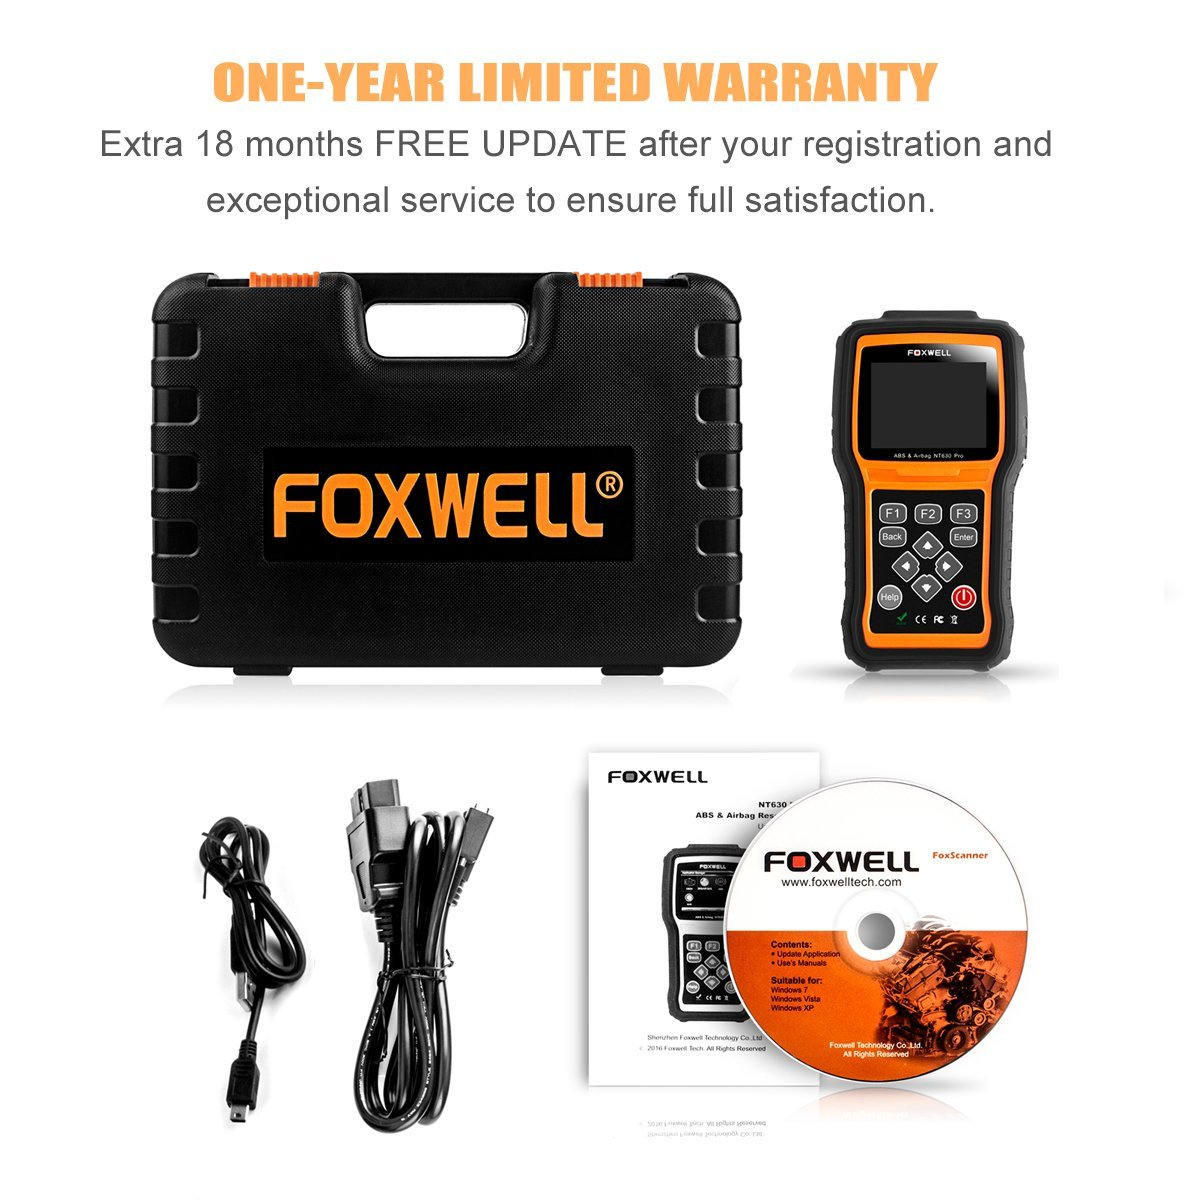 Best OBD 2 Scanners - FOXWELL NT630 Scan Tool Engine ABS Airbag SAS Crash Data Reset Tool Code Reader Car Diagnostic Scanner